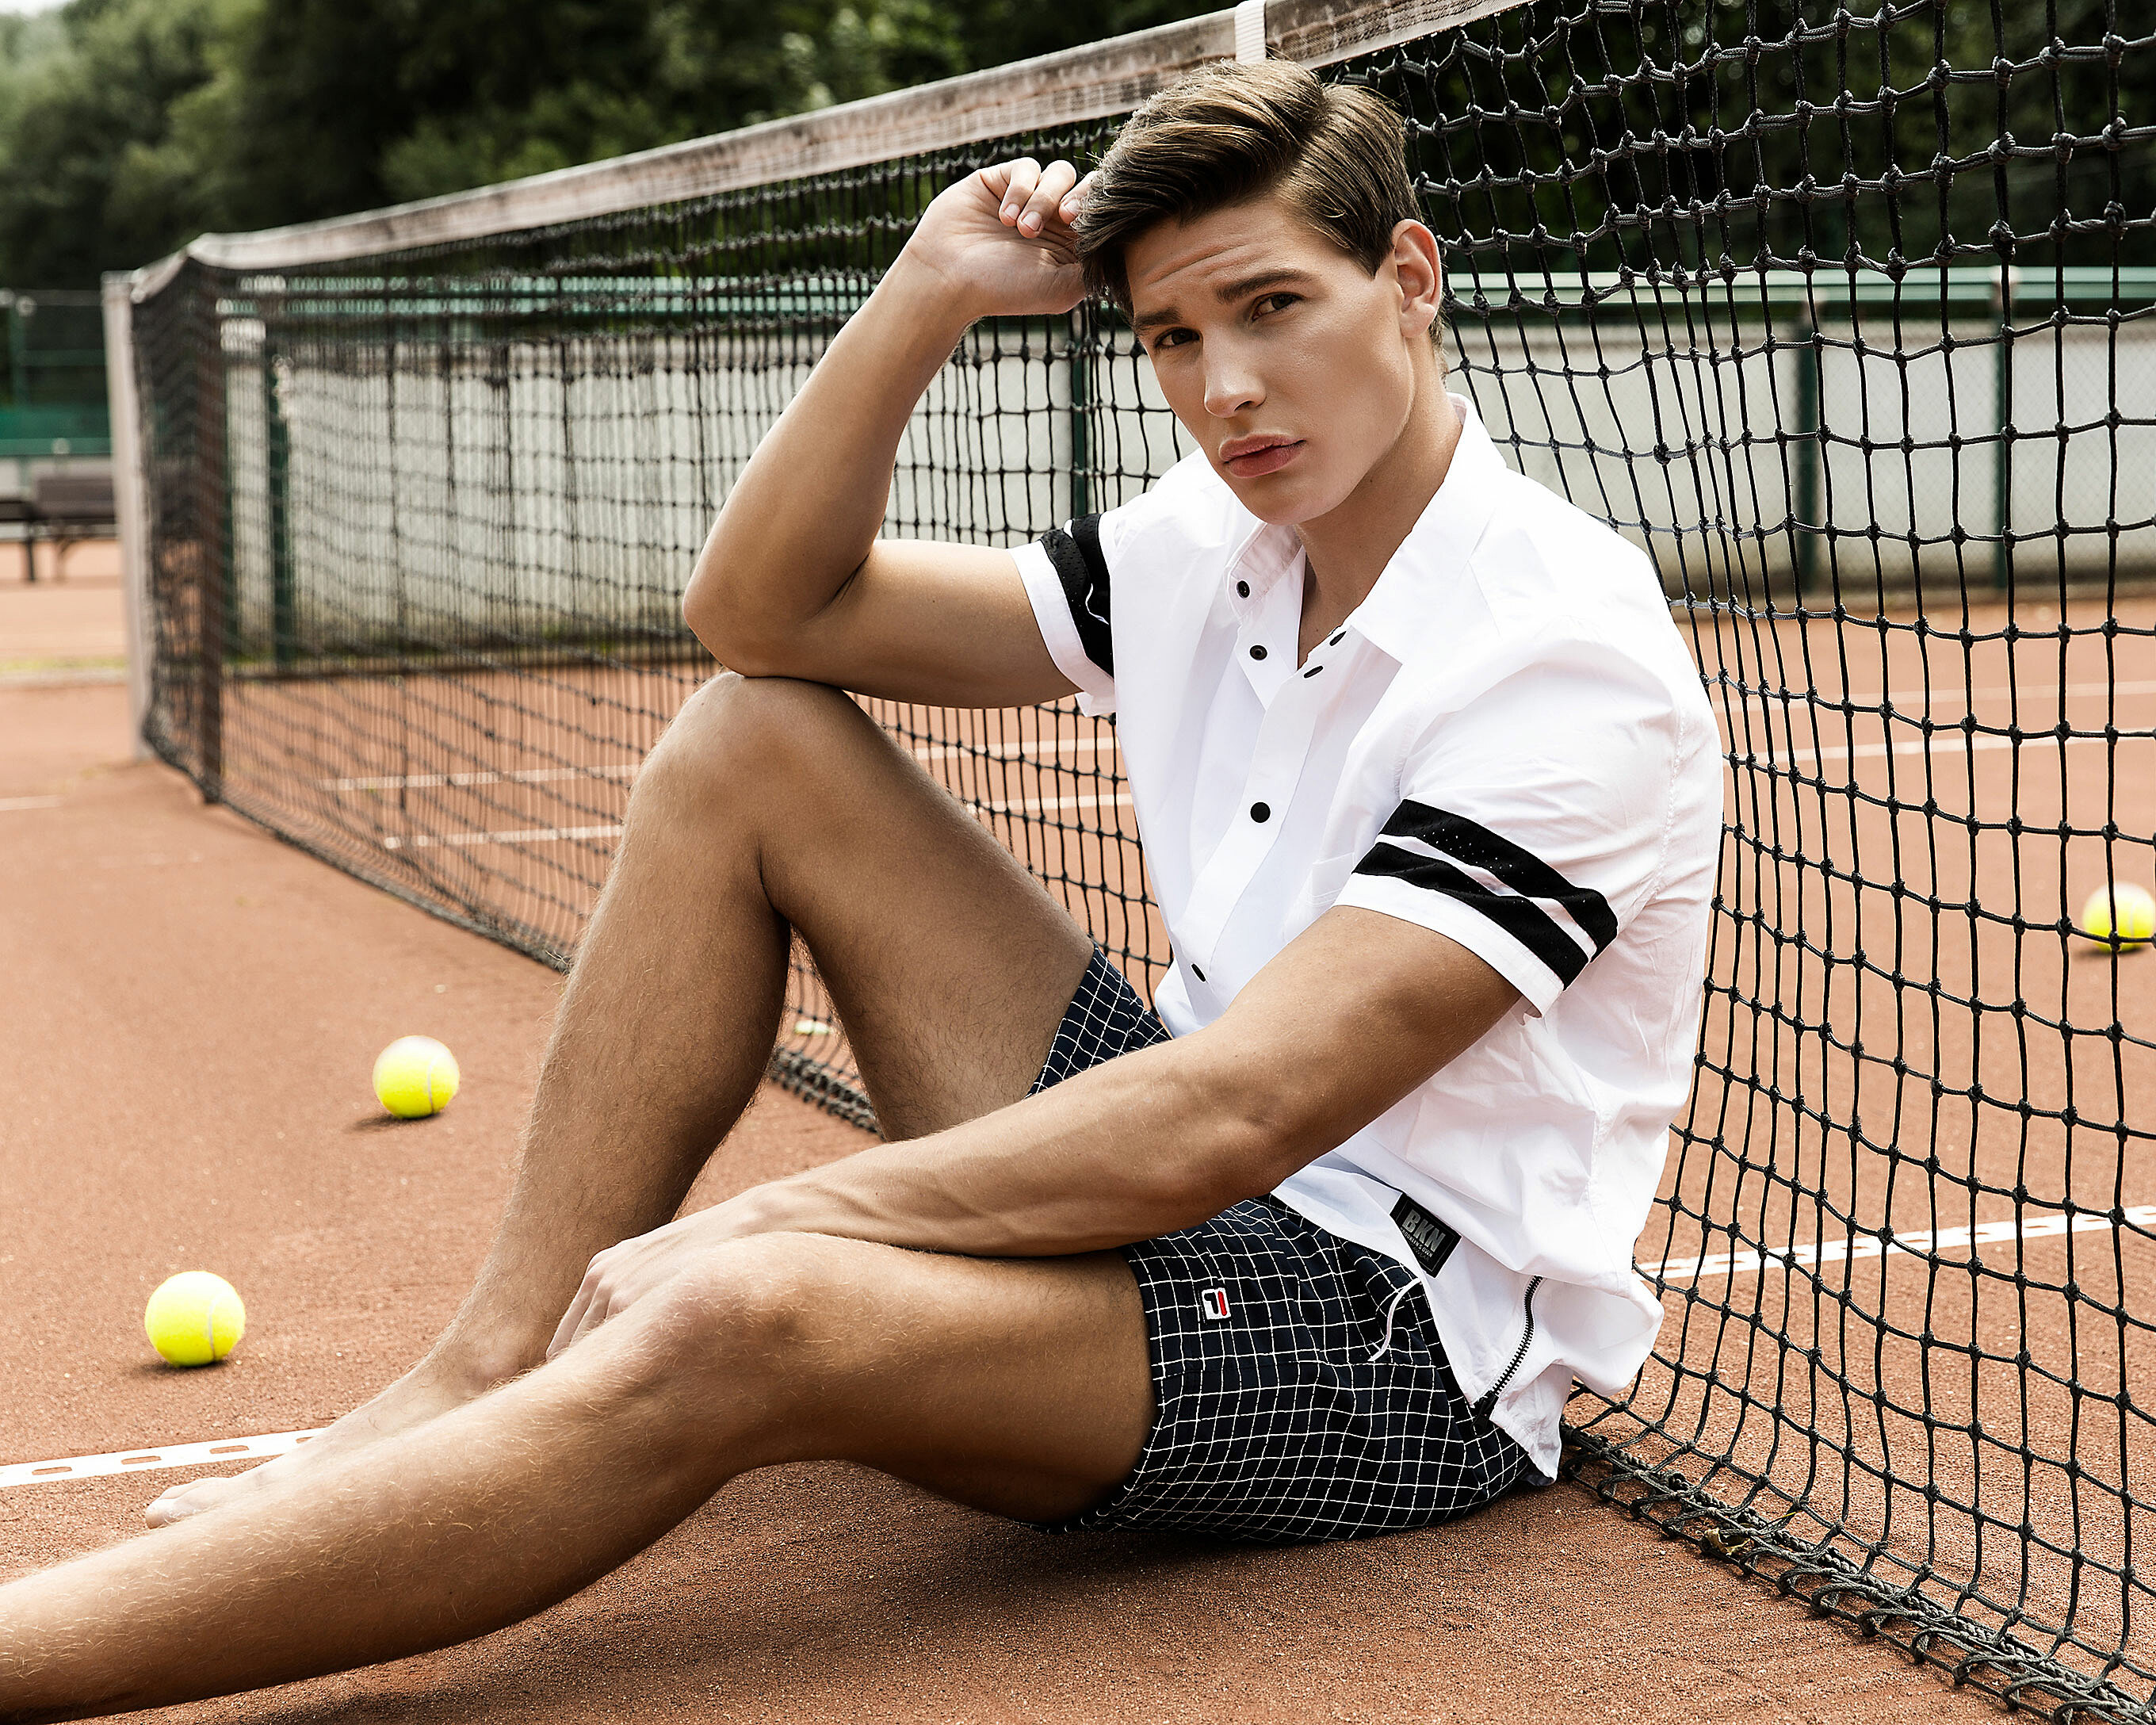 A male model who sit in front of the mesh on the tennis court in a white shirt with short arms and black checked shorts